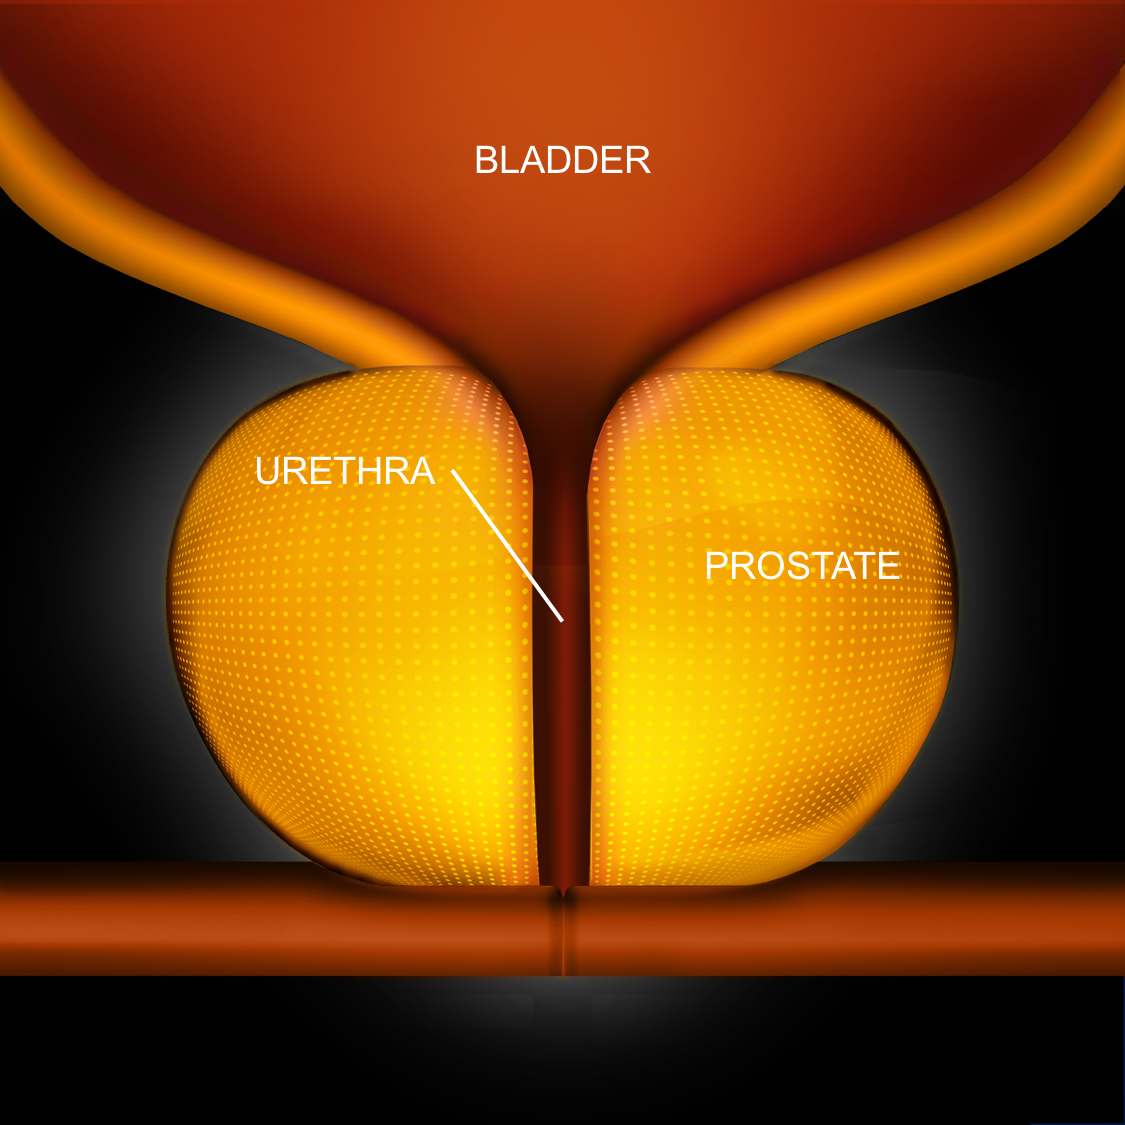 Normal Prostate